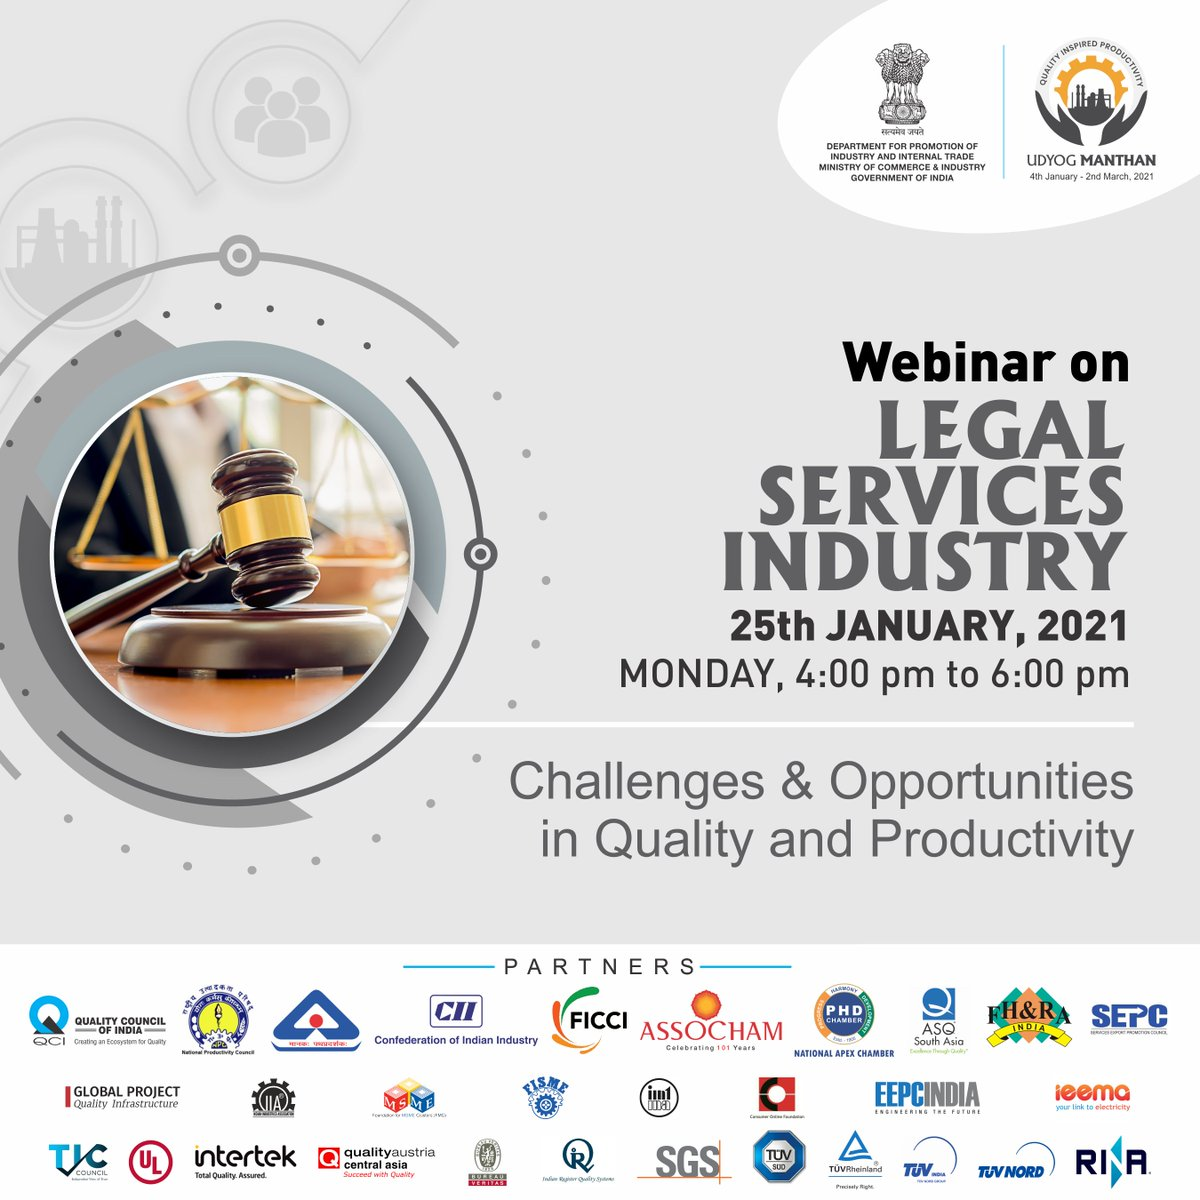 #UdyogManthan  Join us for the webinar on #LegalServices Industry & gain insights about the Challenges & Opportunities for them from our experts.  Watch LIVE :   📅 25-01-2021 ⏰ 4 PM - 6 PM  #AatmaNirbharBharat #MakeInIndia #NewIndia #